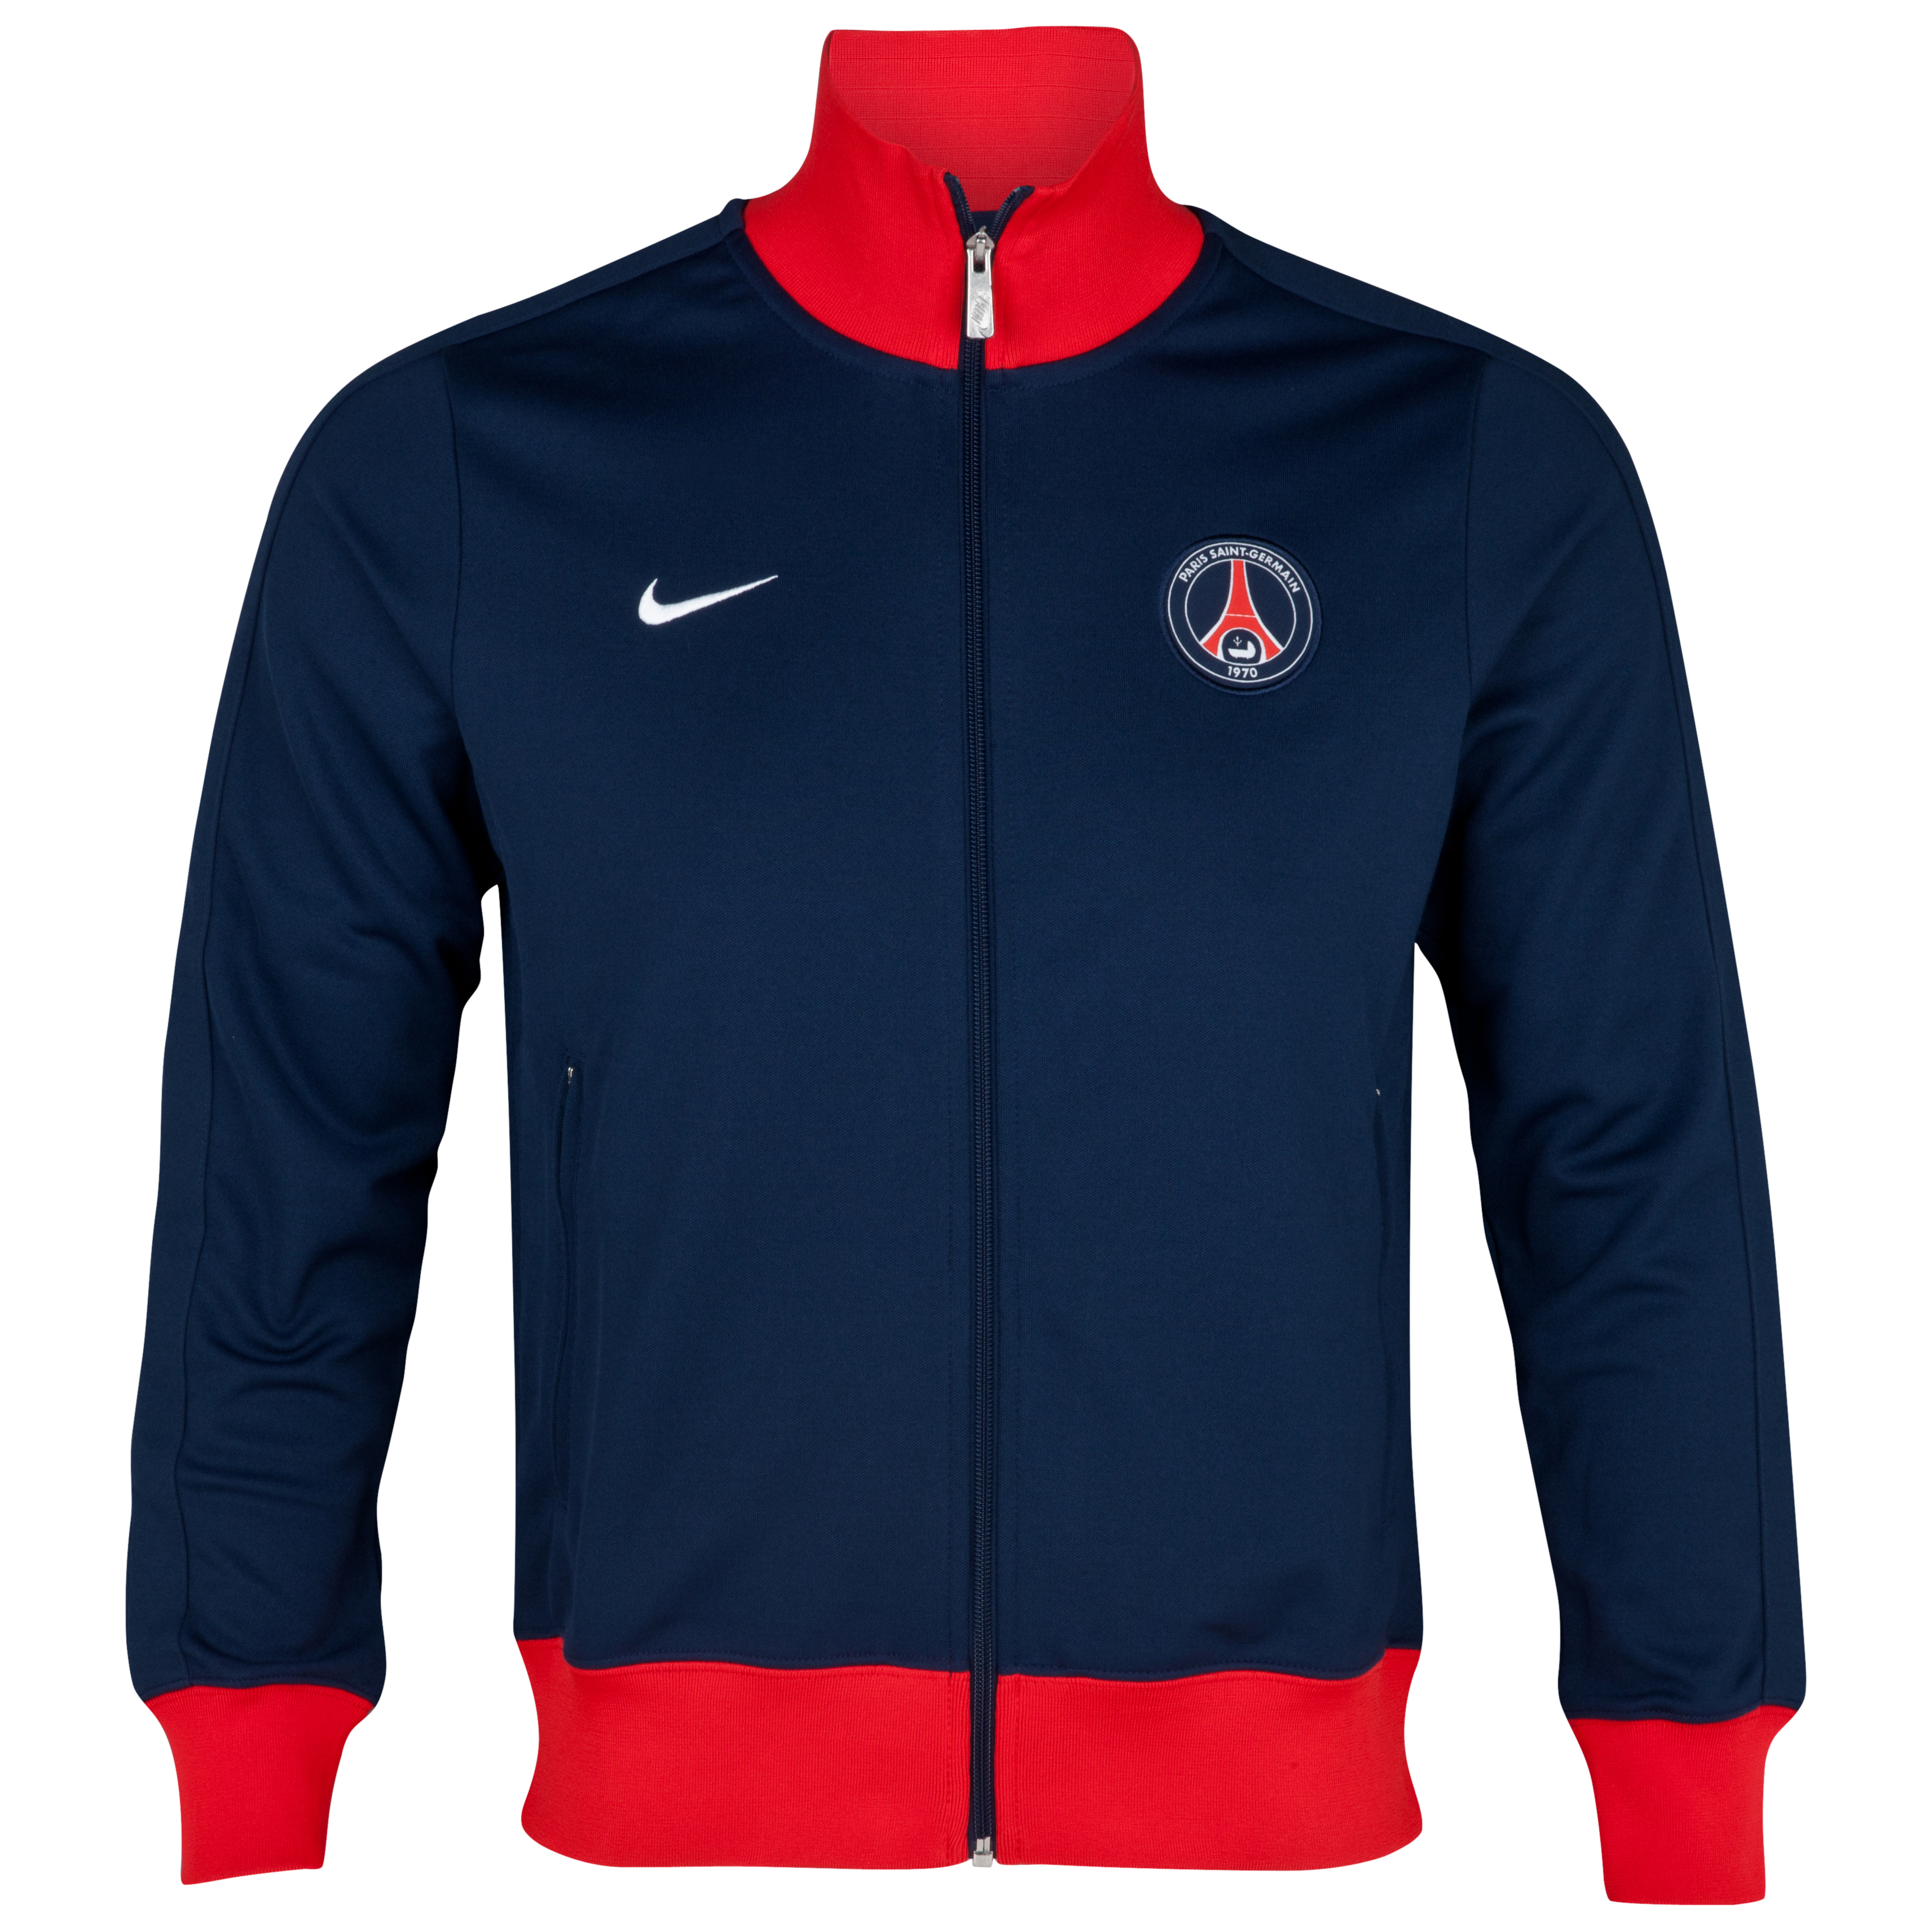 Paris Saint-Germain Authentic N98 Jacket - Midnight Navy/Challenge Red/White